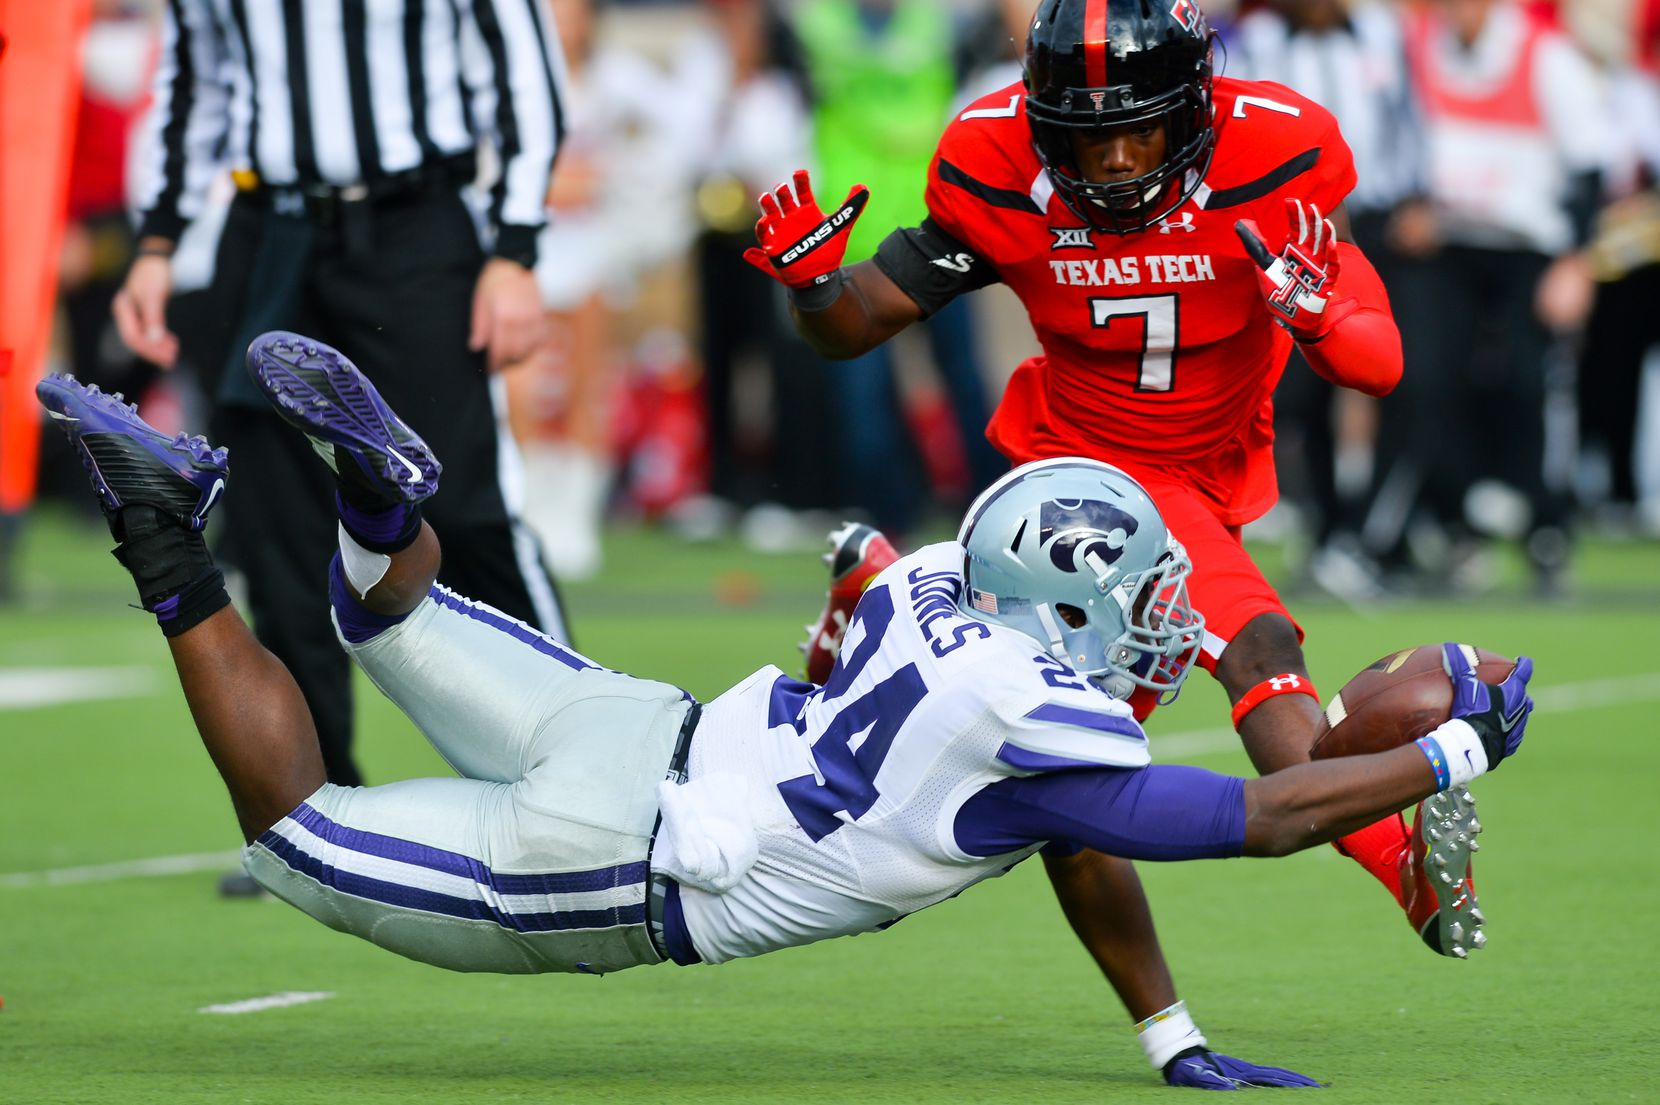 LUBBOCK, TX - NOVEMBER 14: Charles Jones #24 of the Kansas State Wildcats reaches for the end zone against the defense of Jah'Shawn Johnson #7 of the Texas Tech Red Raiders during the game on November 14, 2015 at Jones AT&T Stadium in Lubbock, Texas. Texas Tech won the game 59-44. (Photo by John Weast/Getty Images)